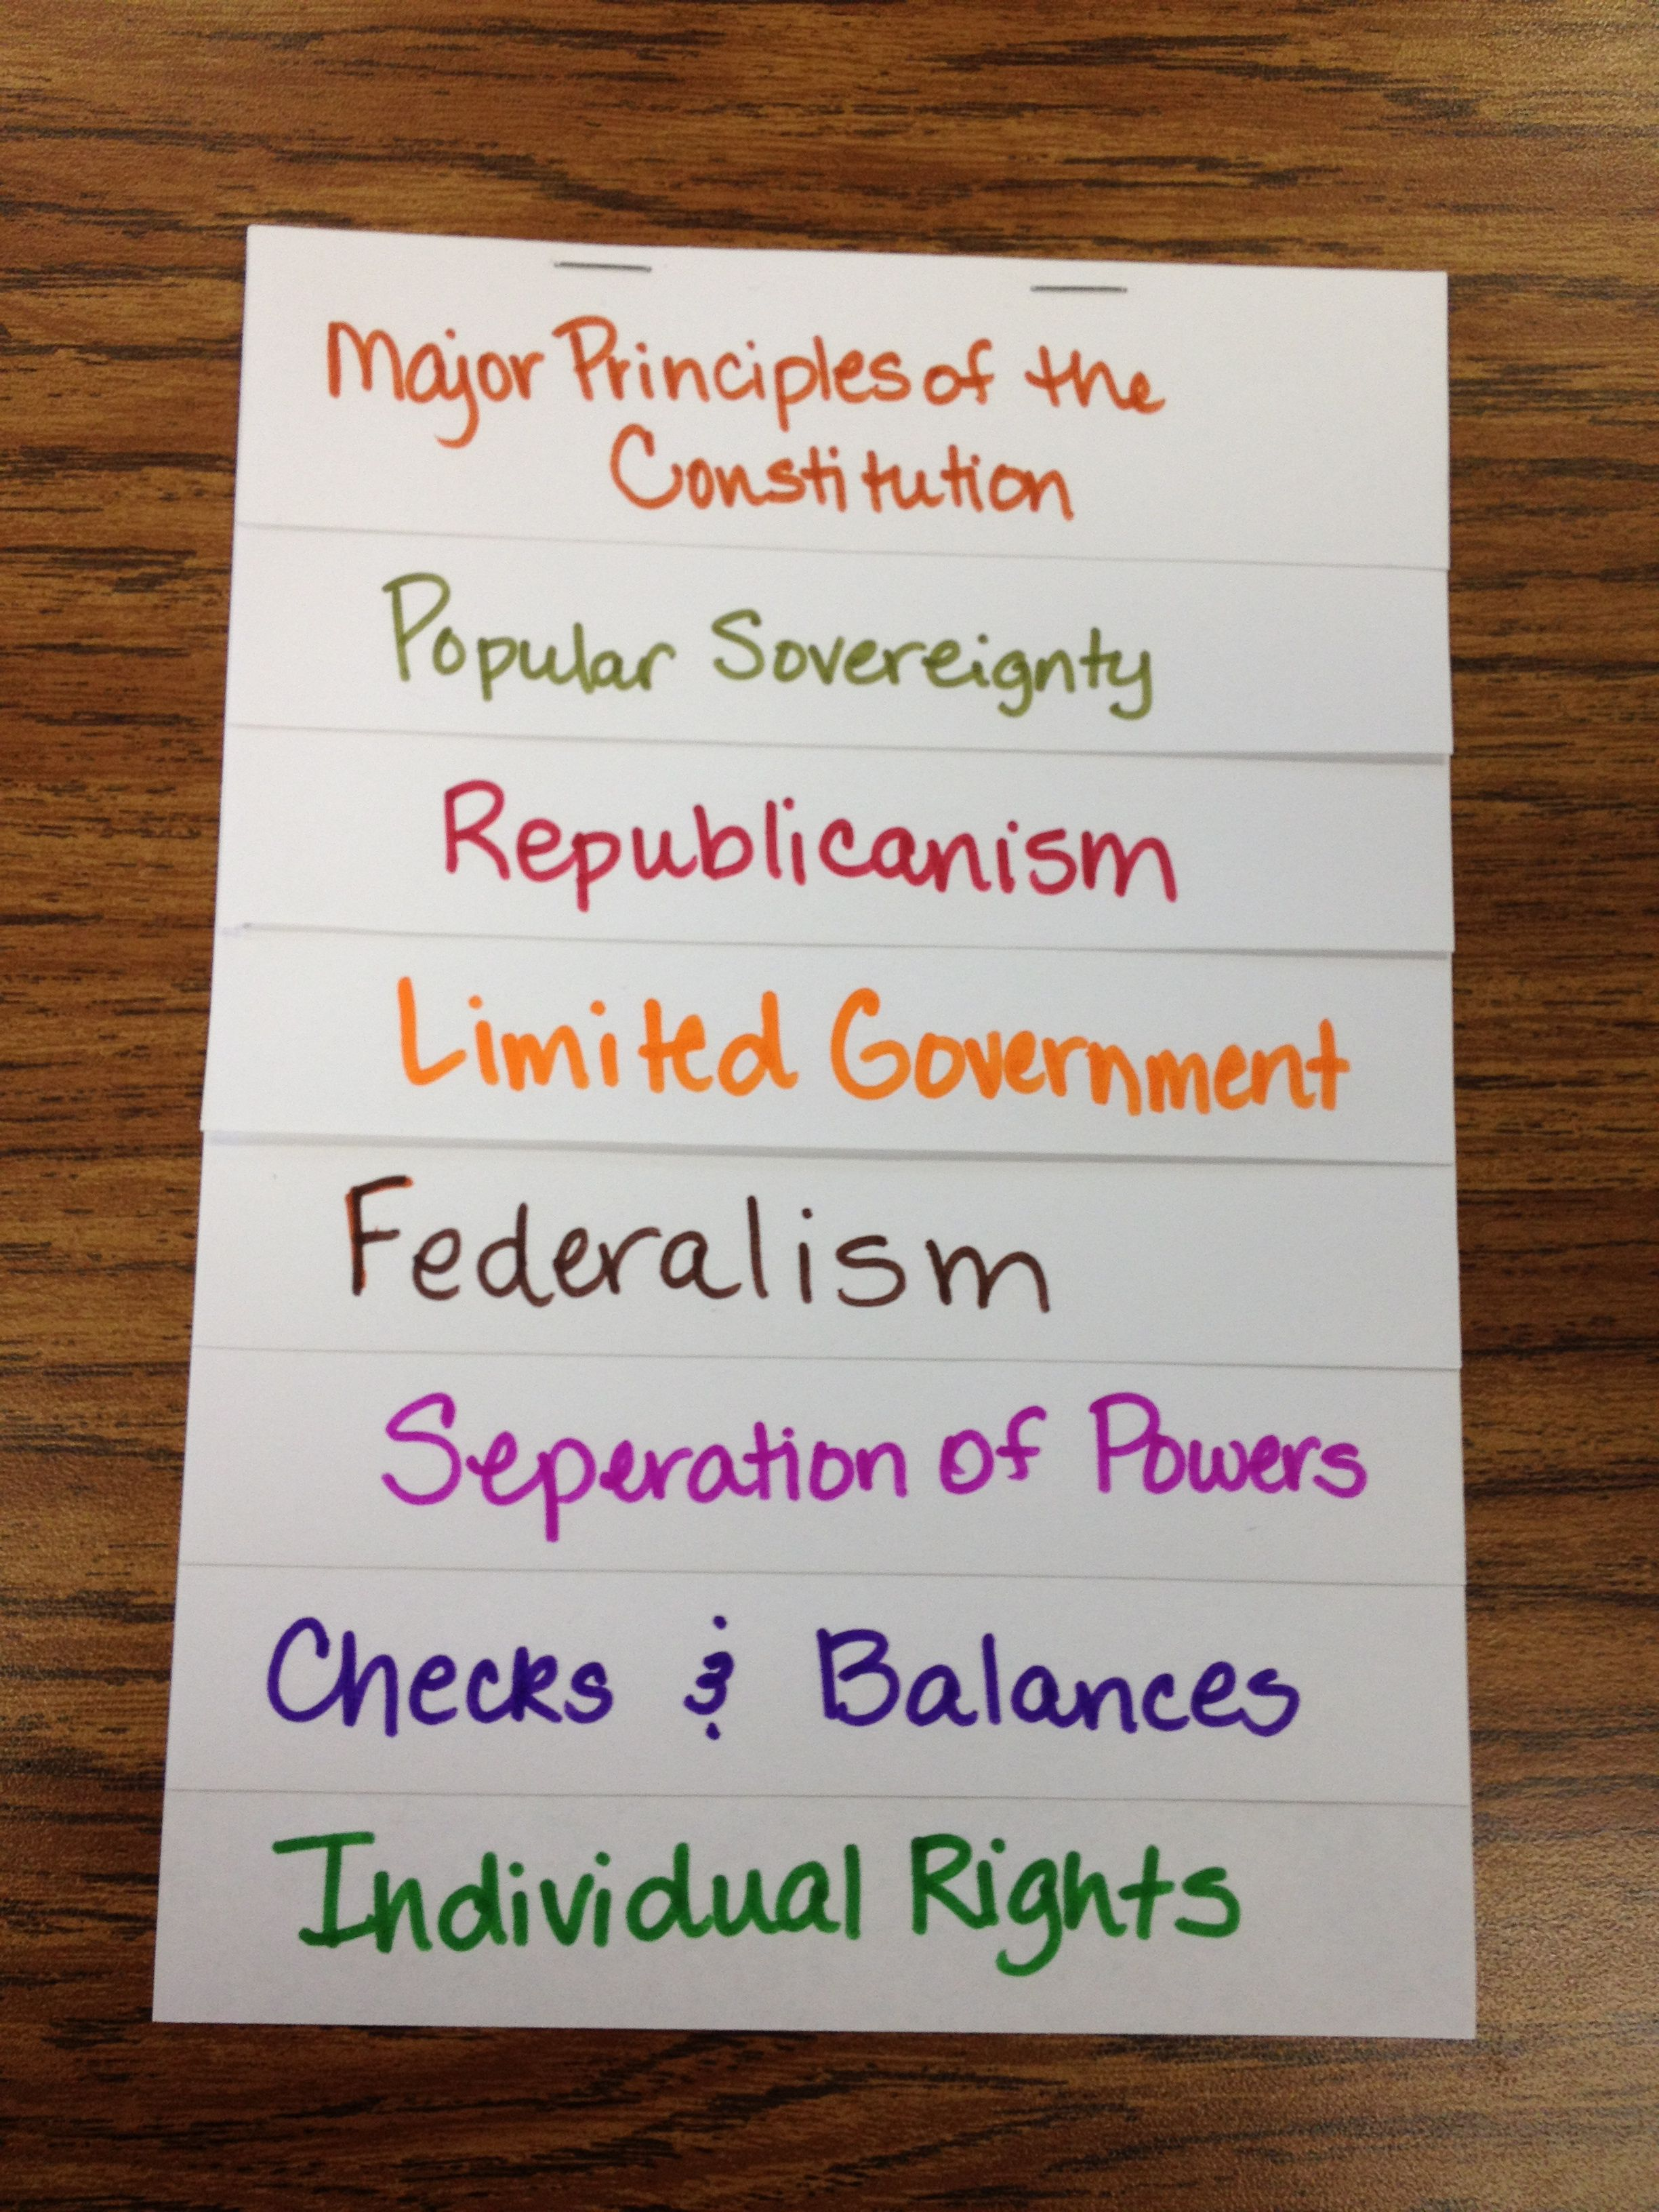 Major Principles of the Constitution - Layer book for note taking ...